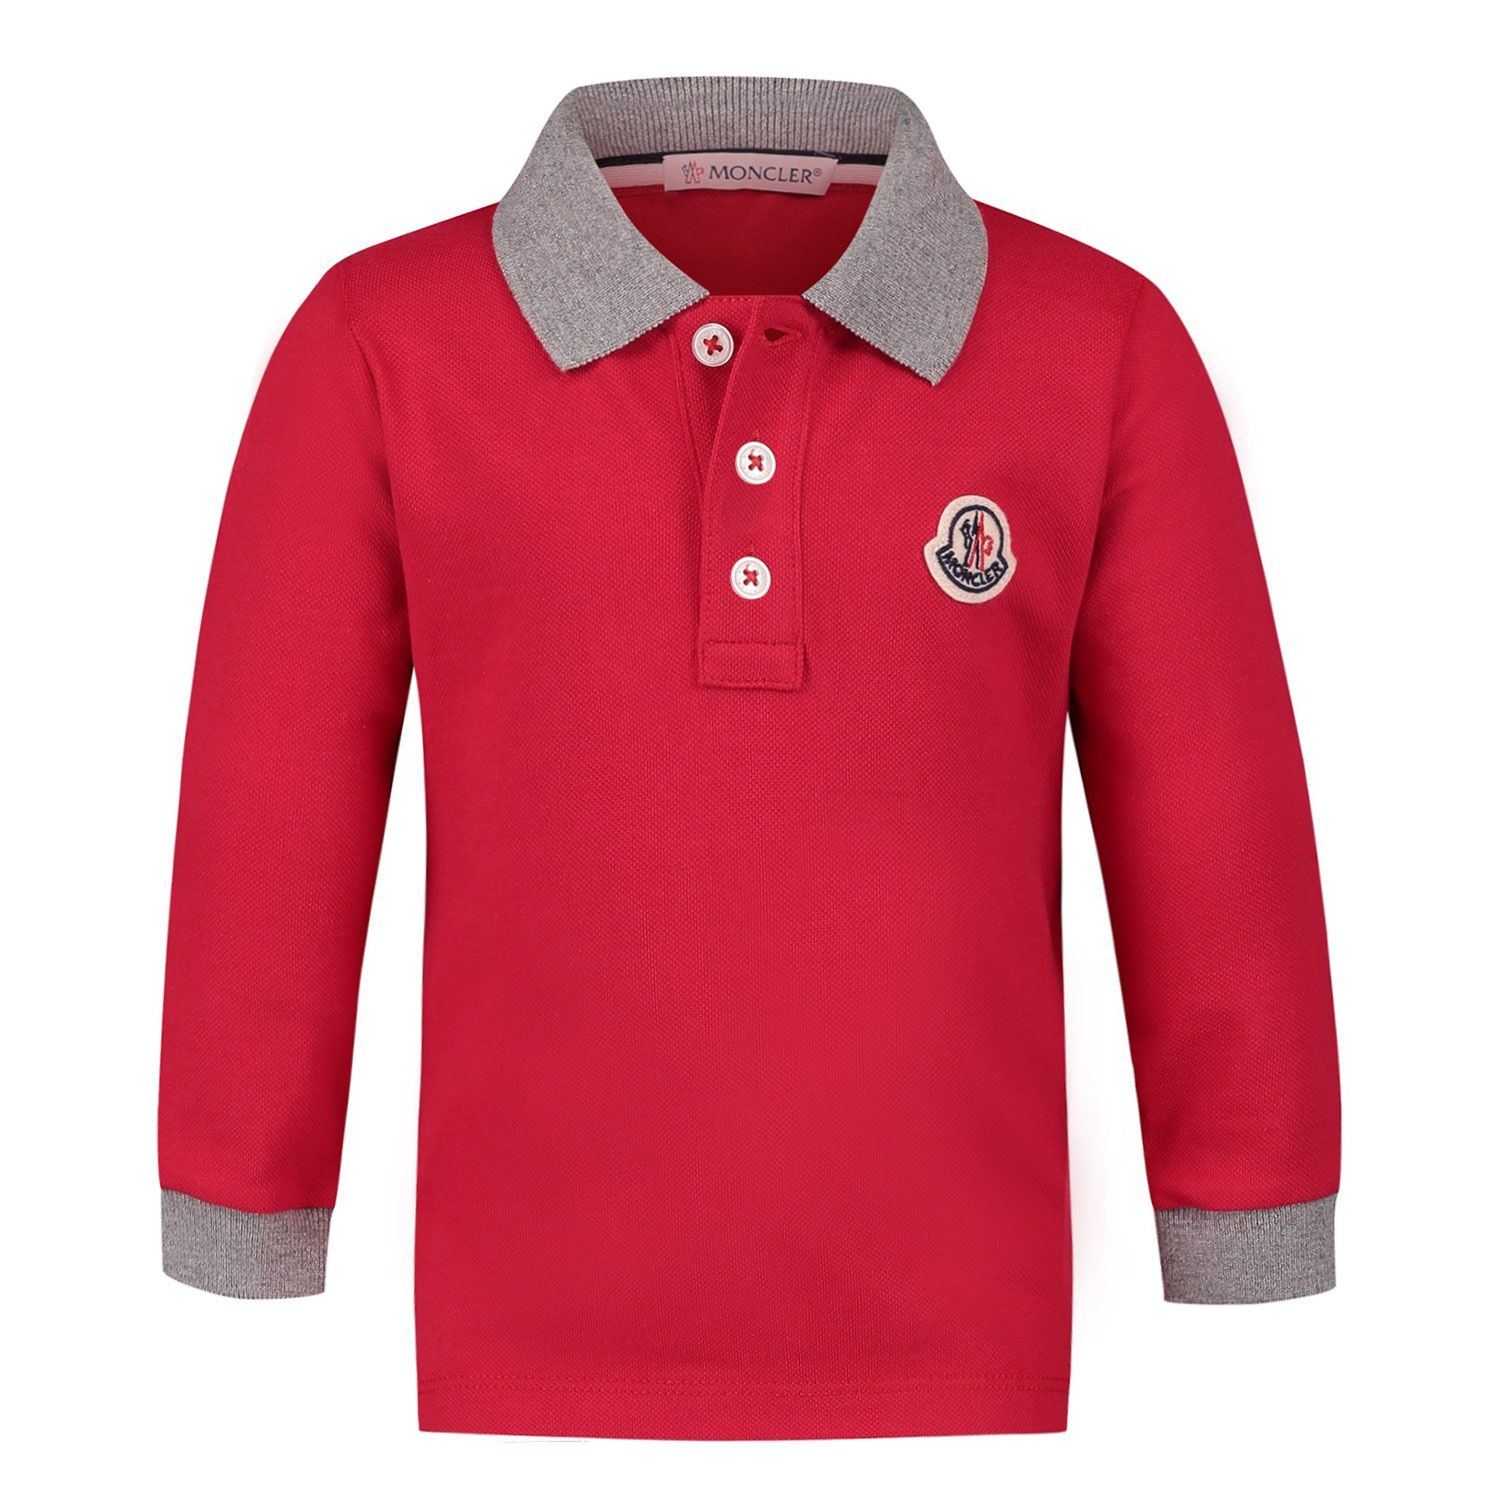 Picture of Moncler 8B70520 baby poloshirt red